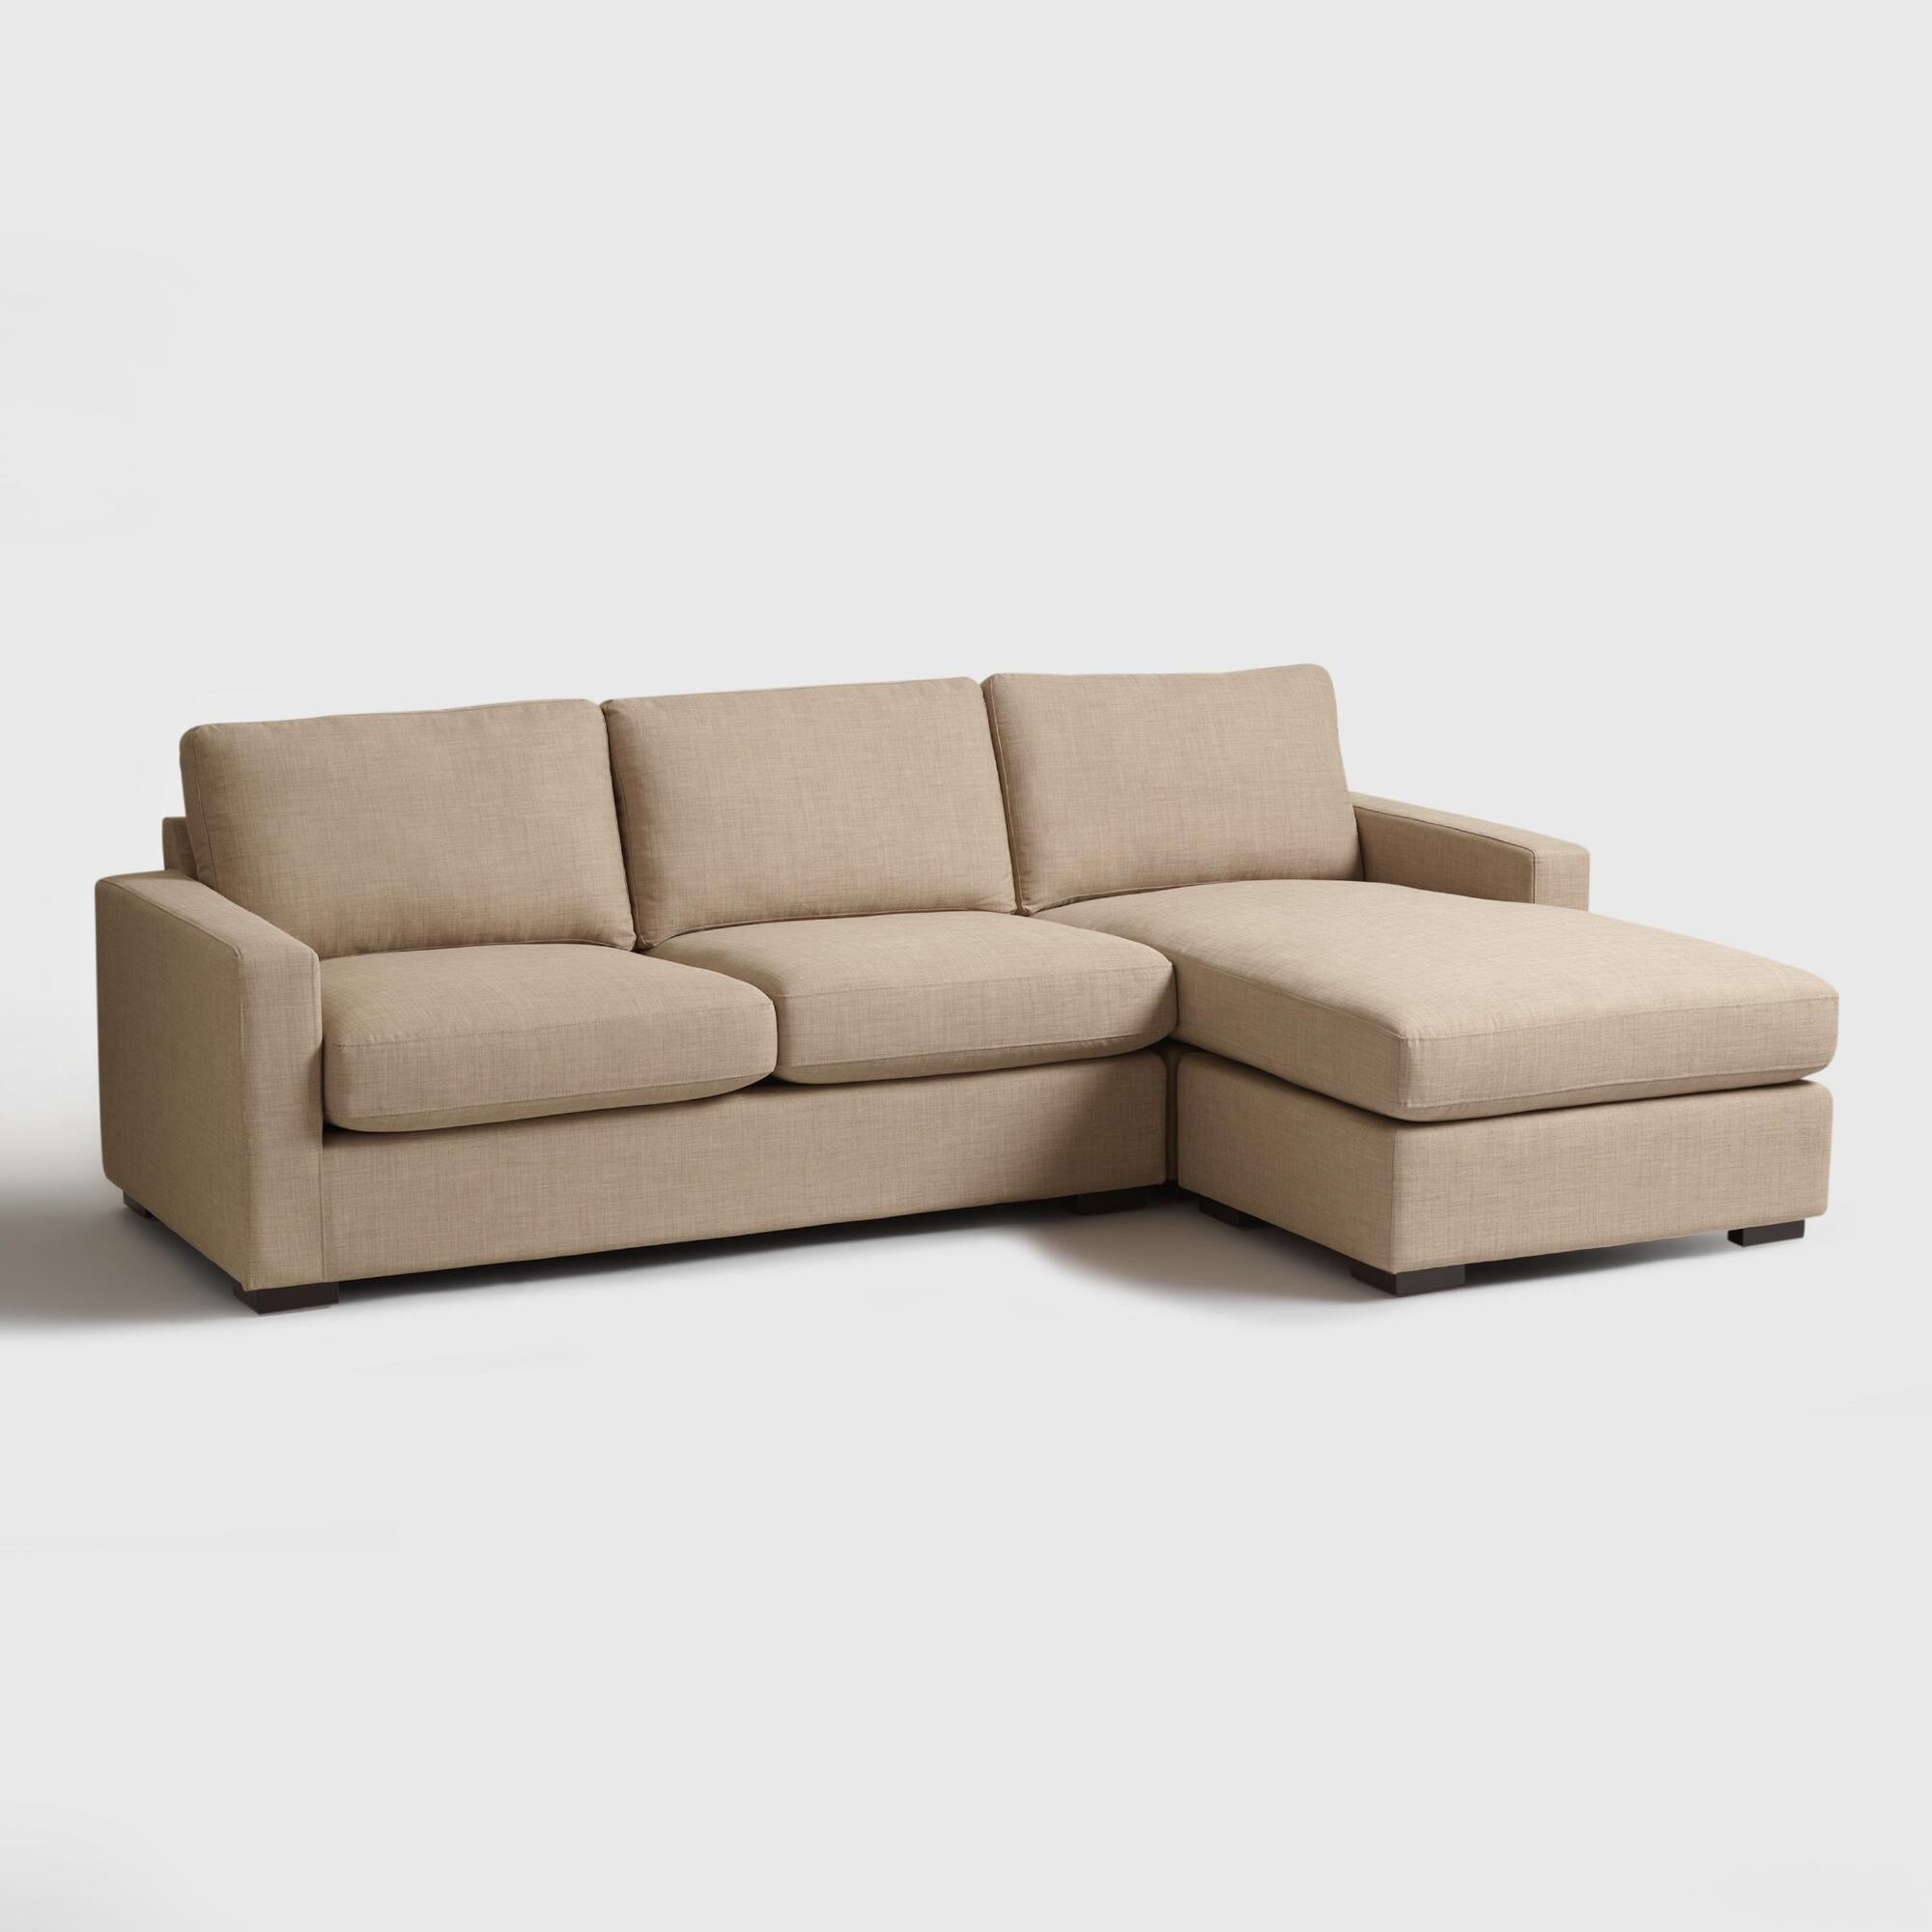 category flexform res victor chaise lounge chaiselongue sofa longue product large low